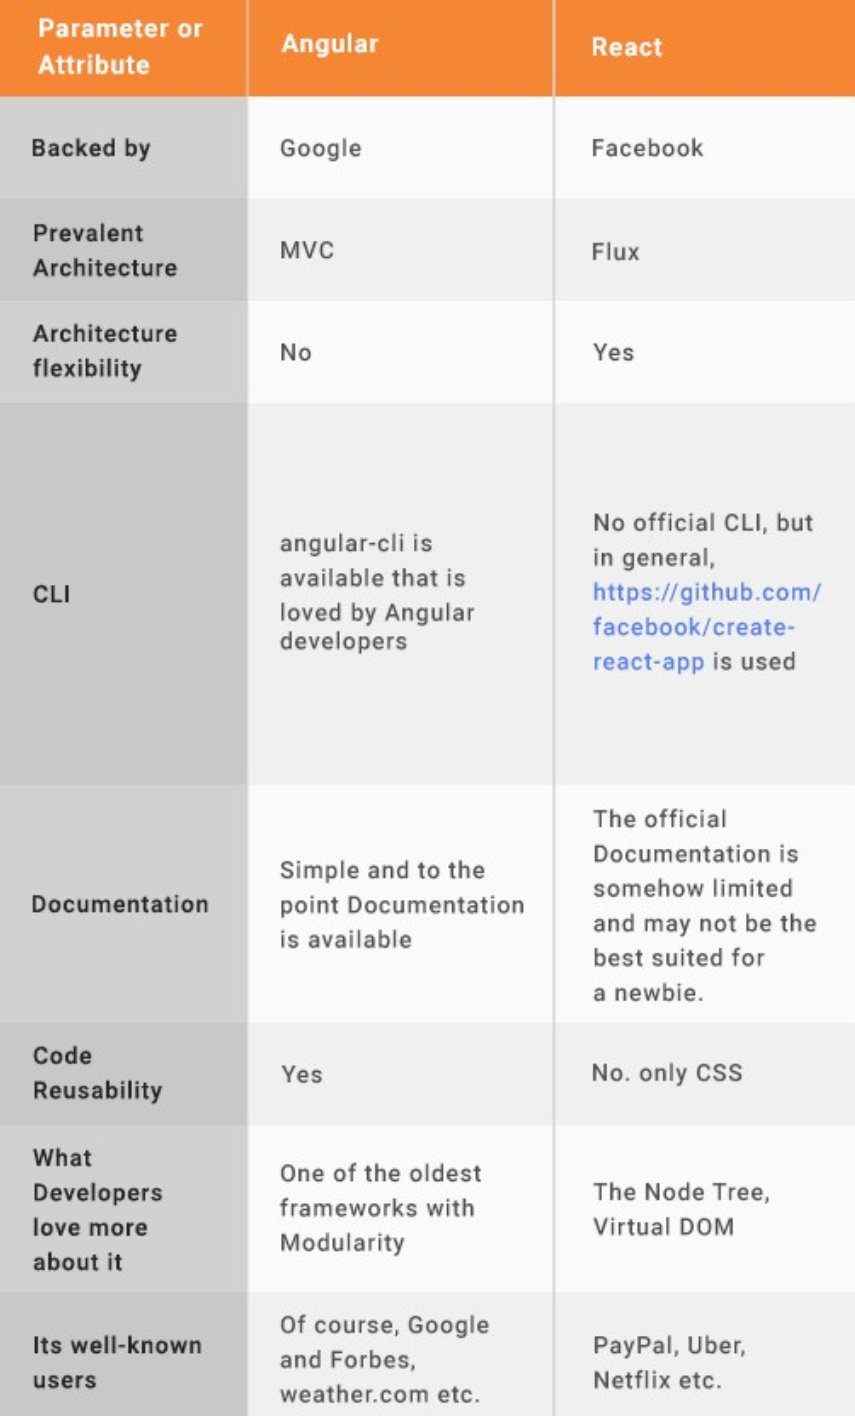 AngularJS and ReactJS Comparision table